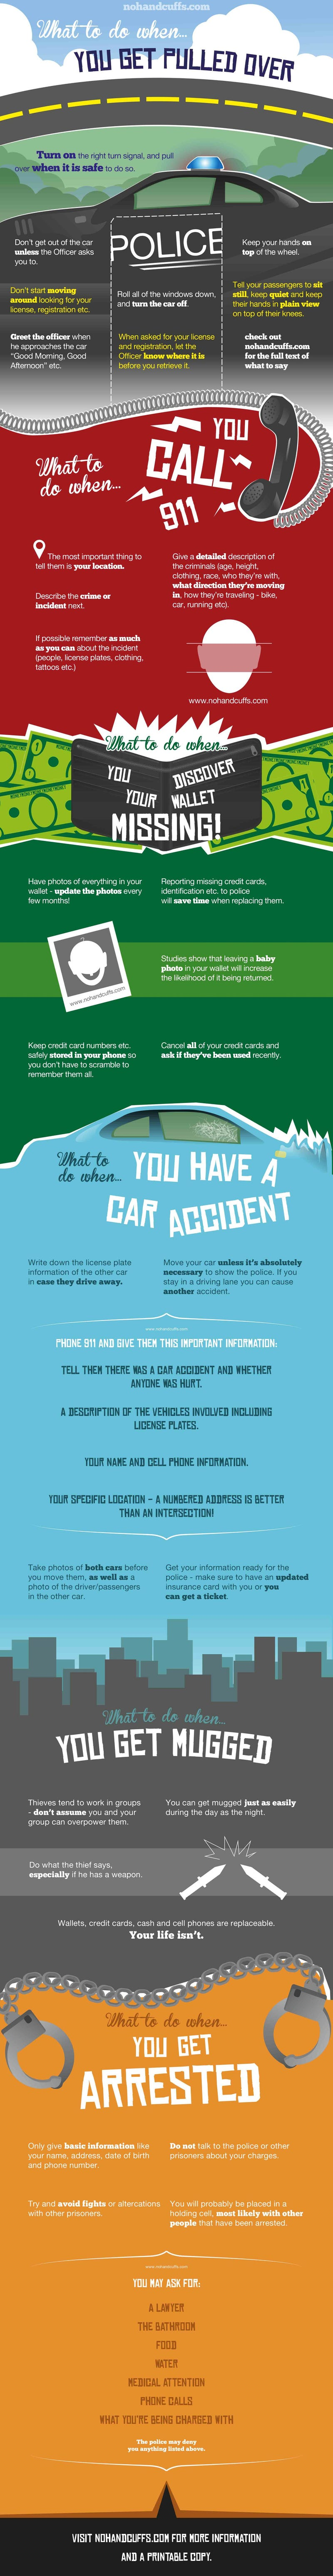 Put This Infographic in Your Wallet to Know What to Do When Bad Things Happen